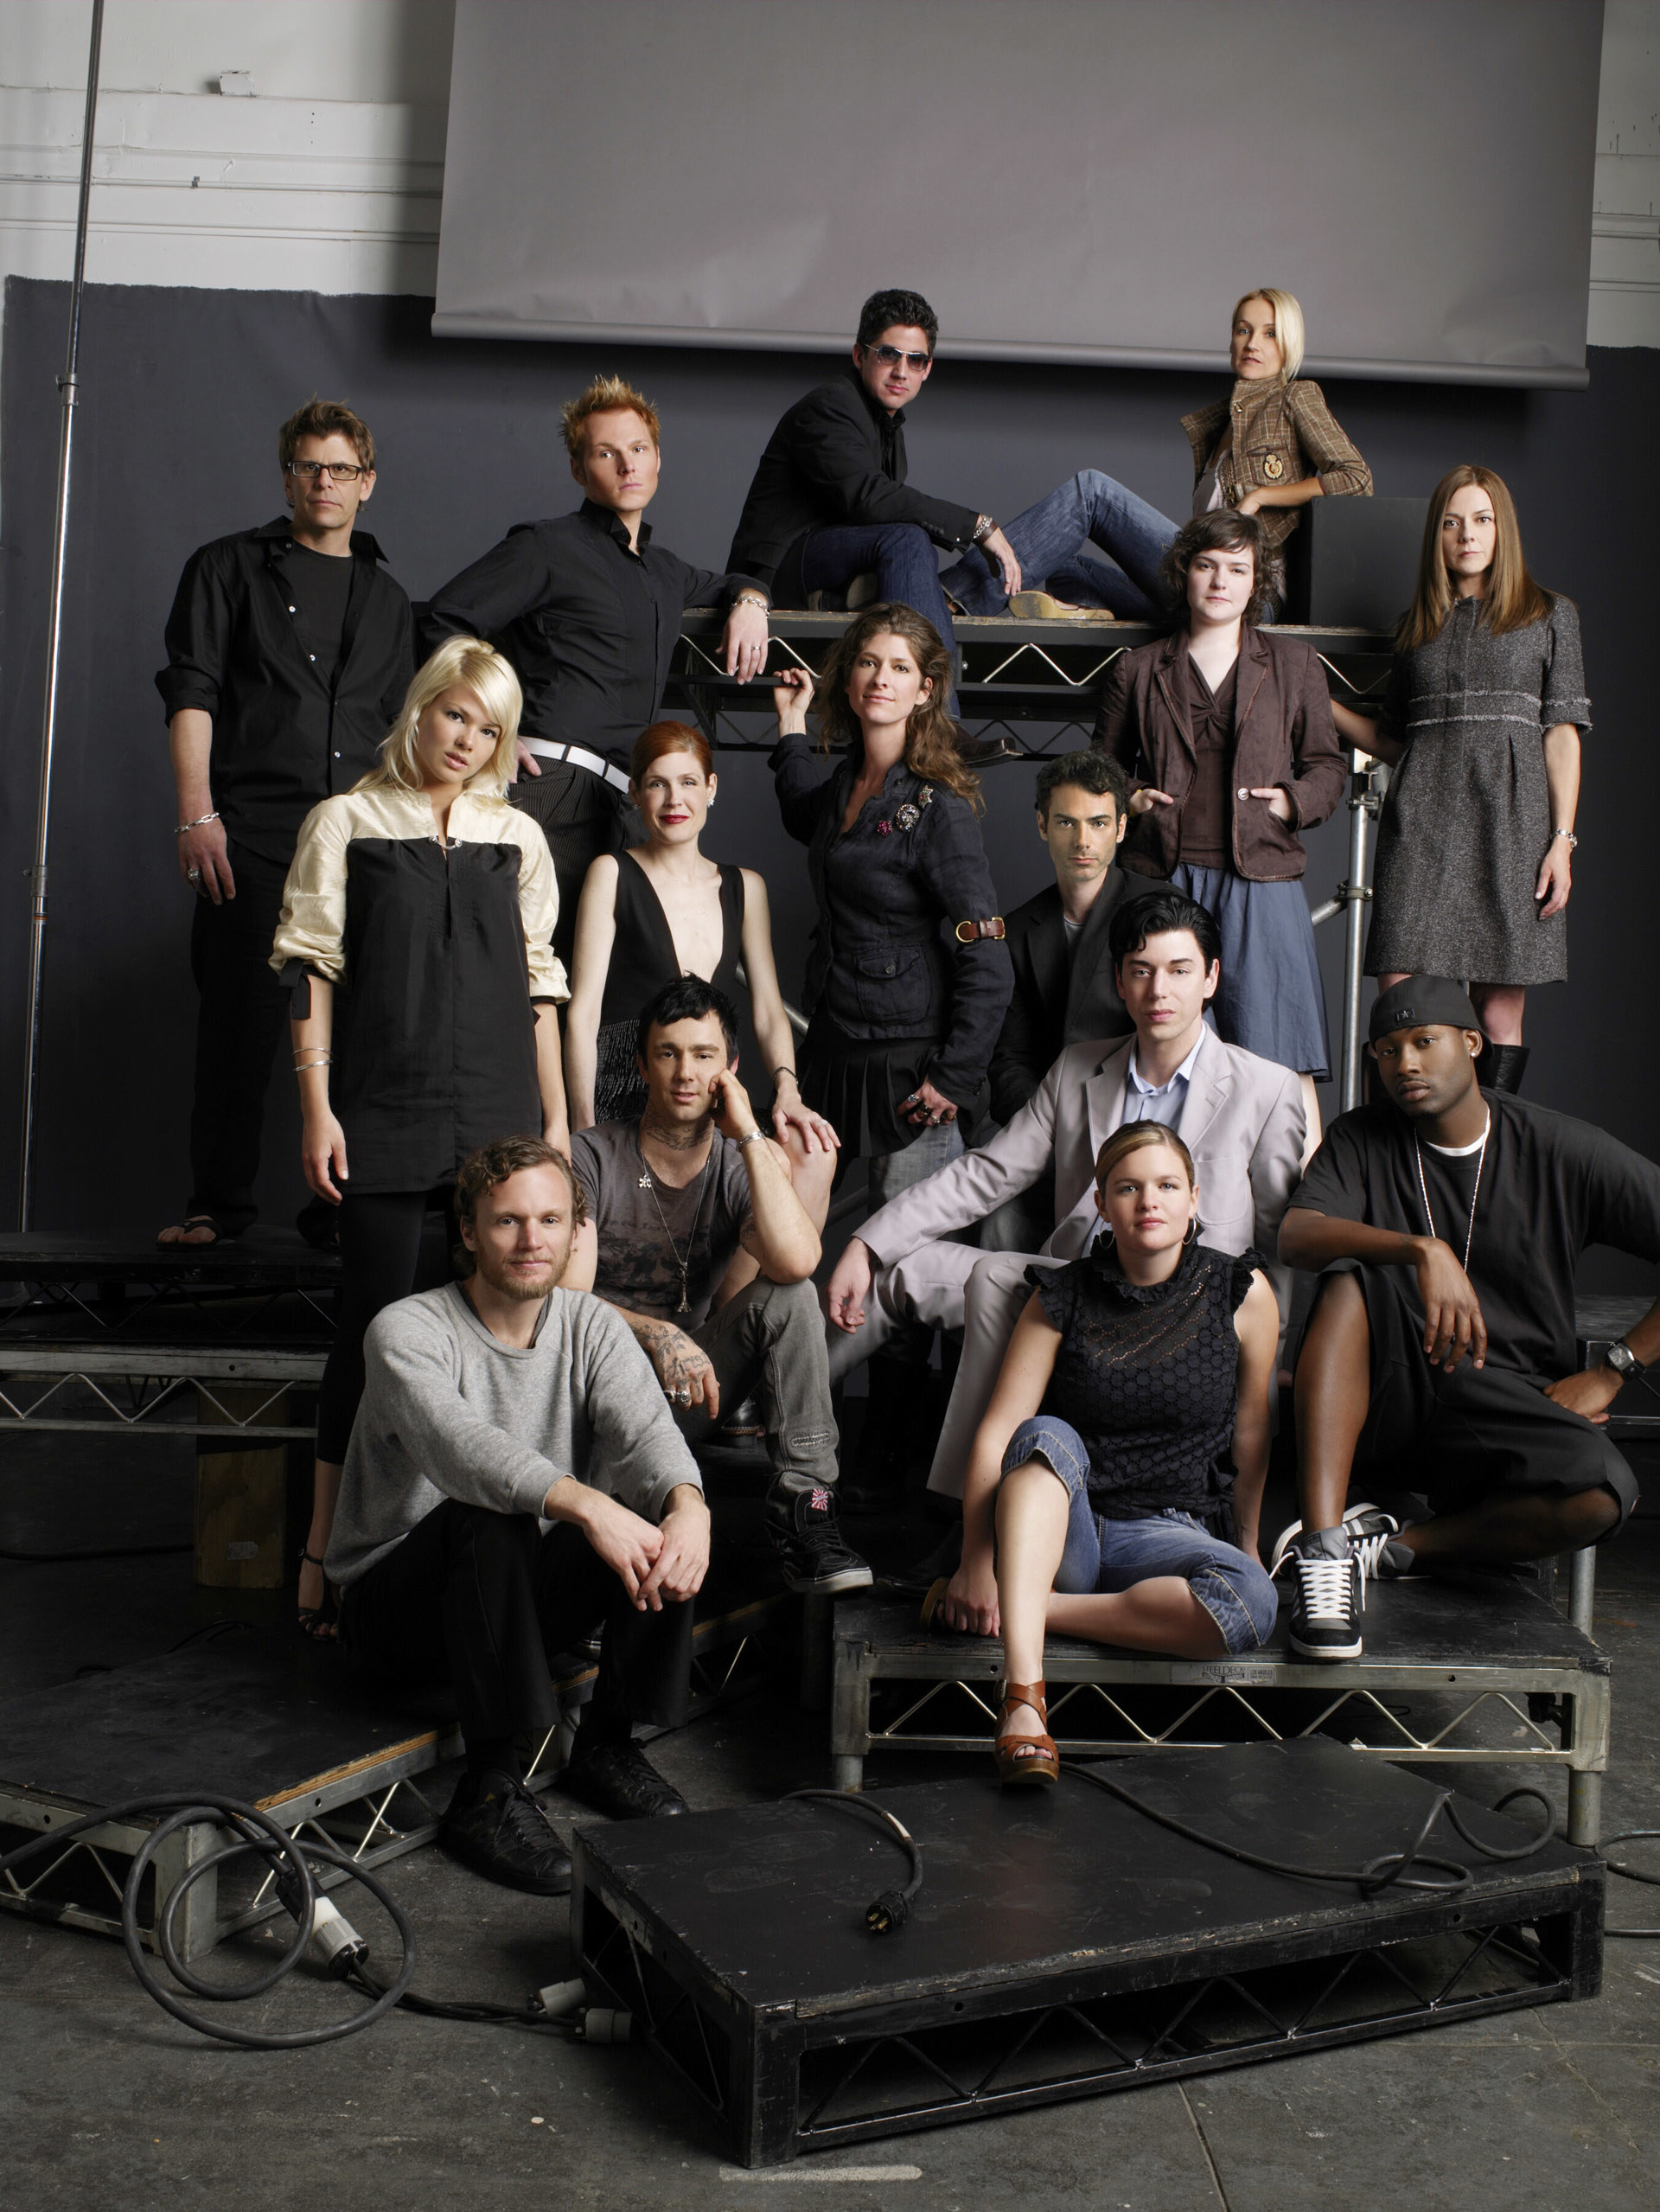 The contestants from season 3